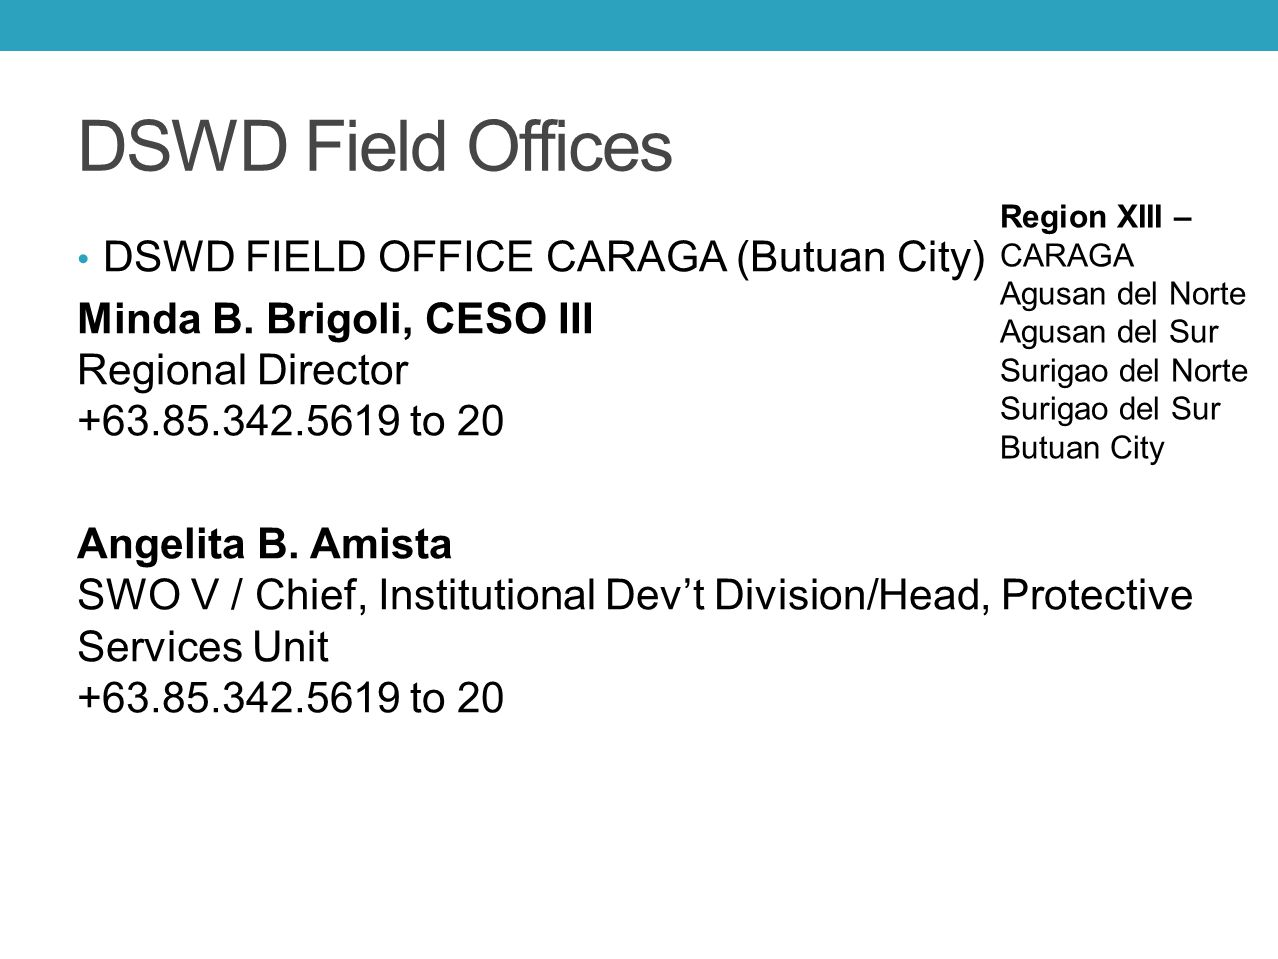 DSWD Field Offices DSWD FIELD OFFICE CARAGA (Butuan City)